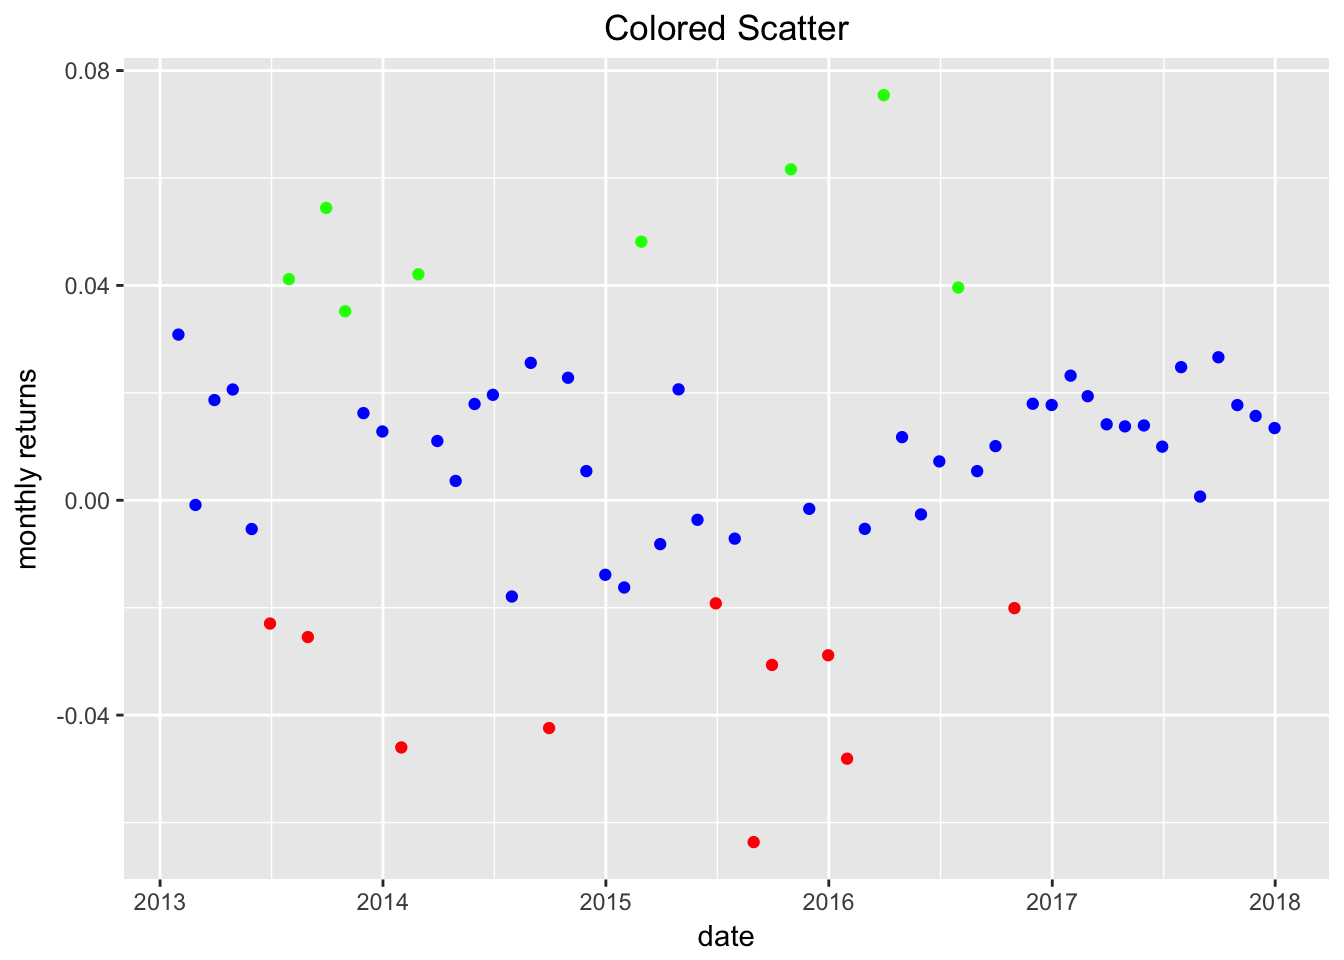 Scatter of Returns Colored by Distance Mean